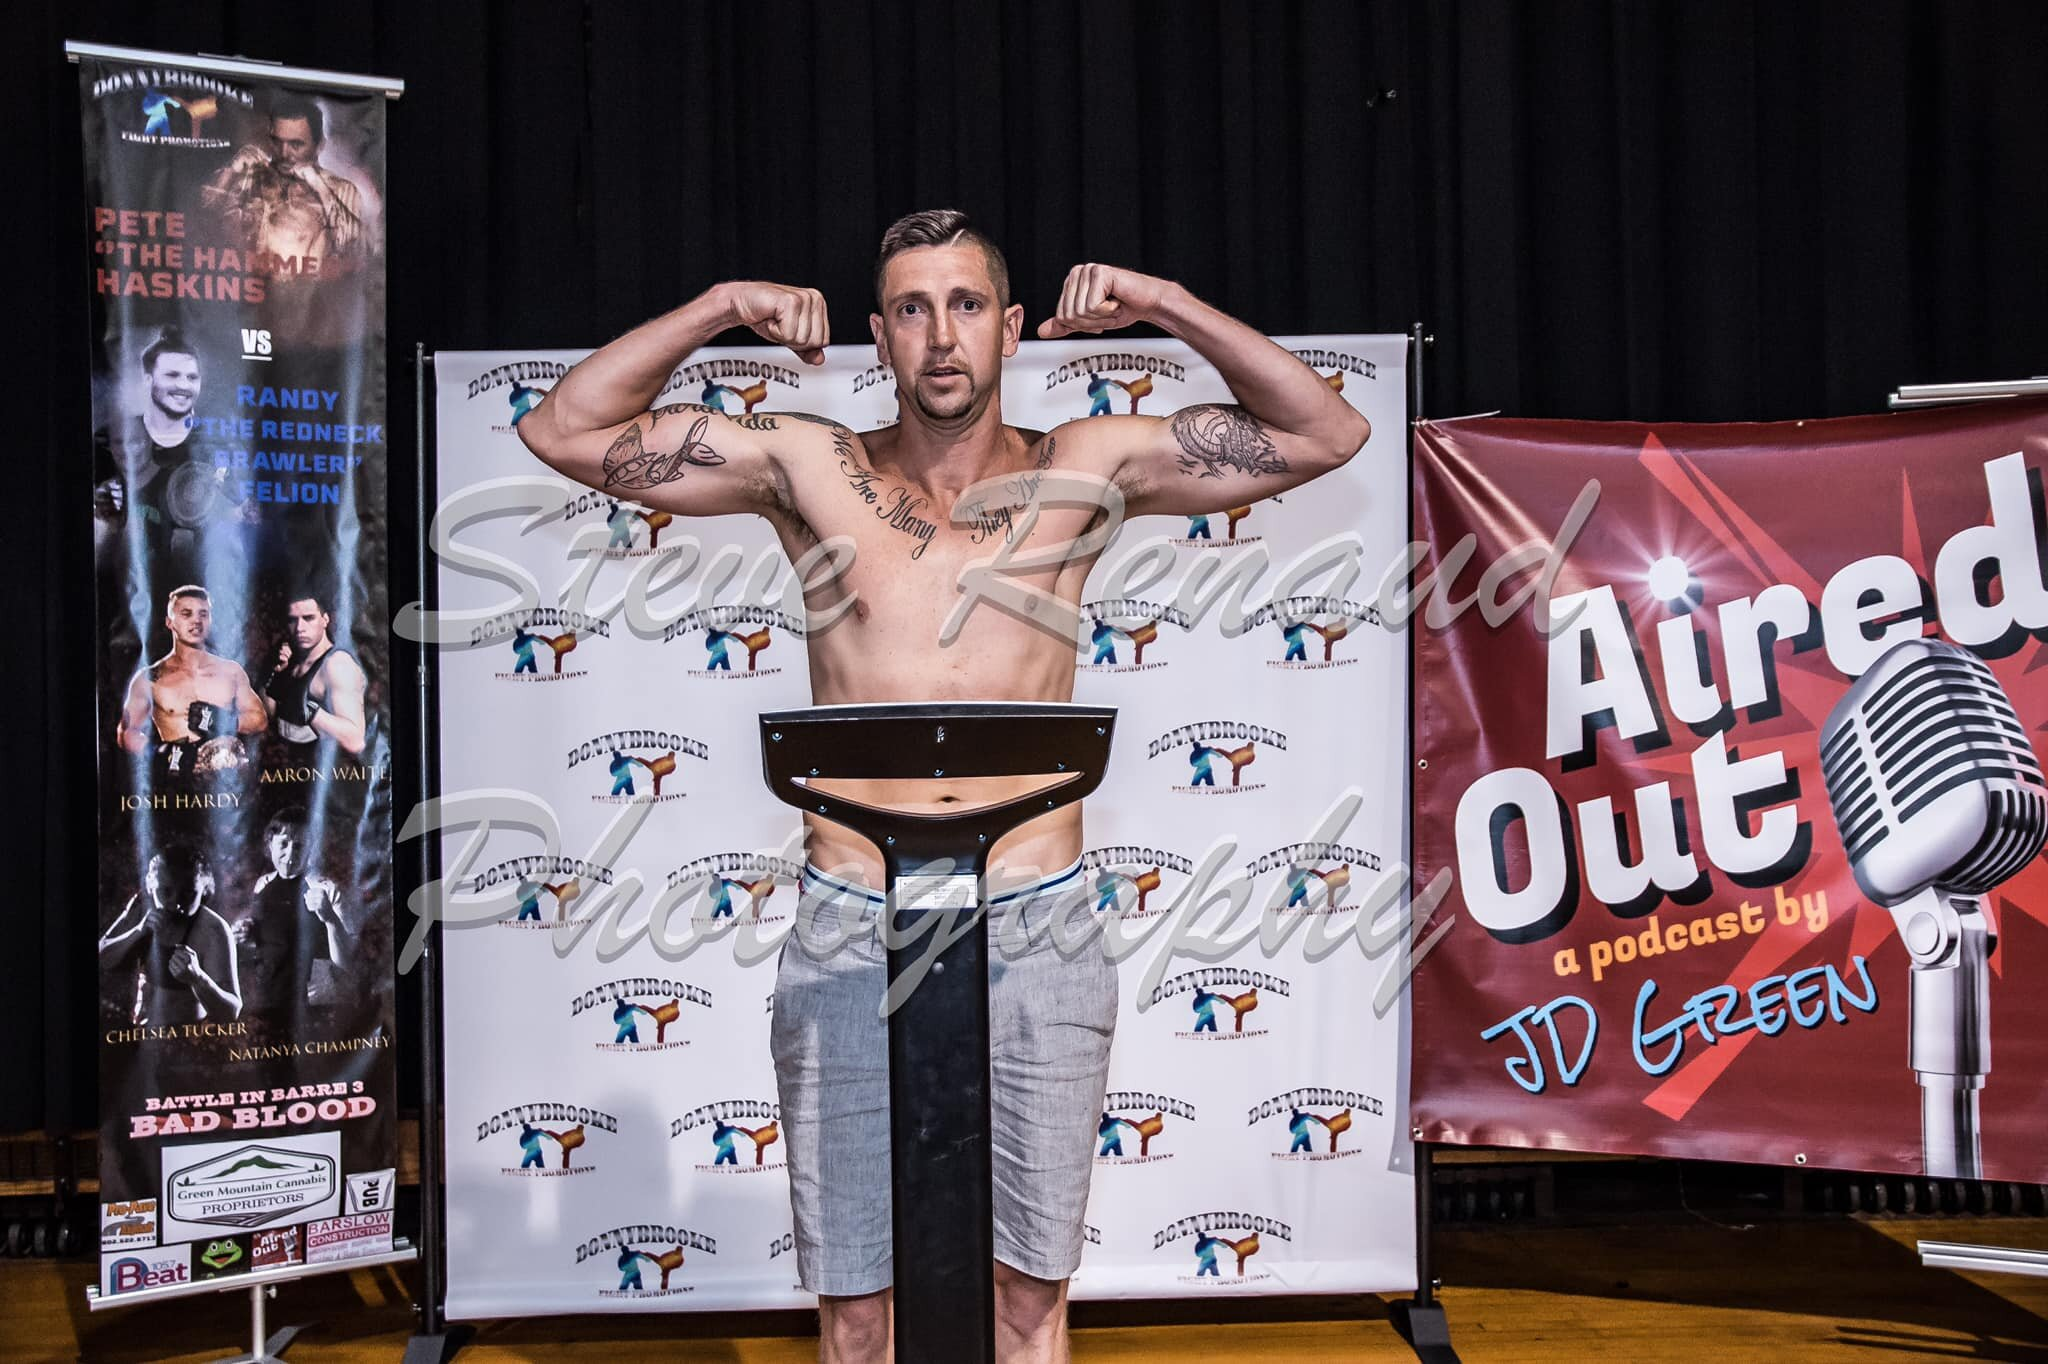 Lliam Carrol - Undefeated fighter and #1 contender for the DonnyBrooke 185lb Muay Thai titleFights out of United Fighting Arts Institute,Trains under Highley Decorated Thai Instructor Kru Ballard at UFAI